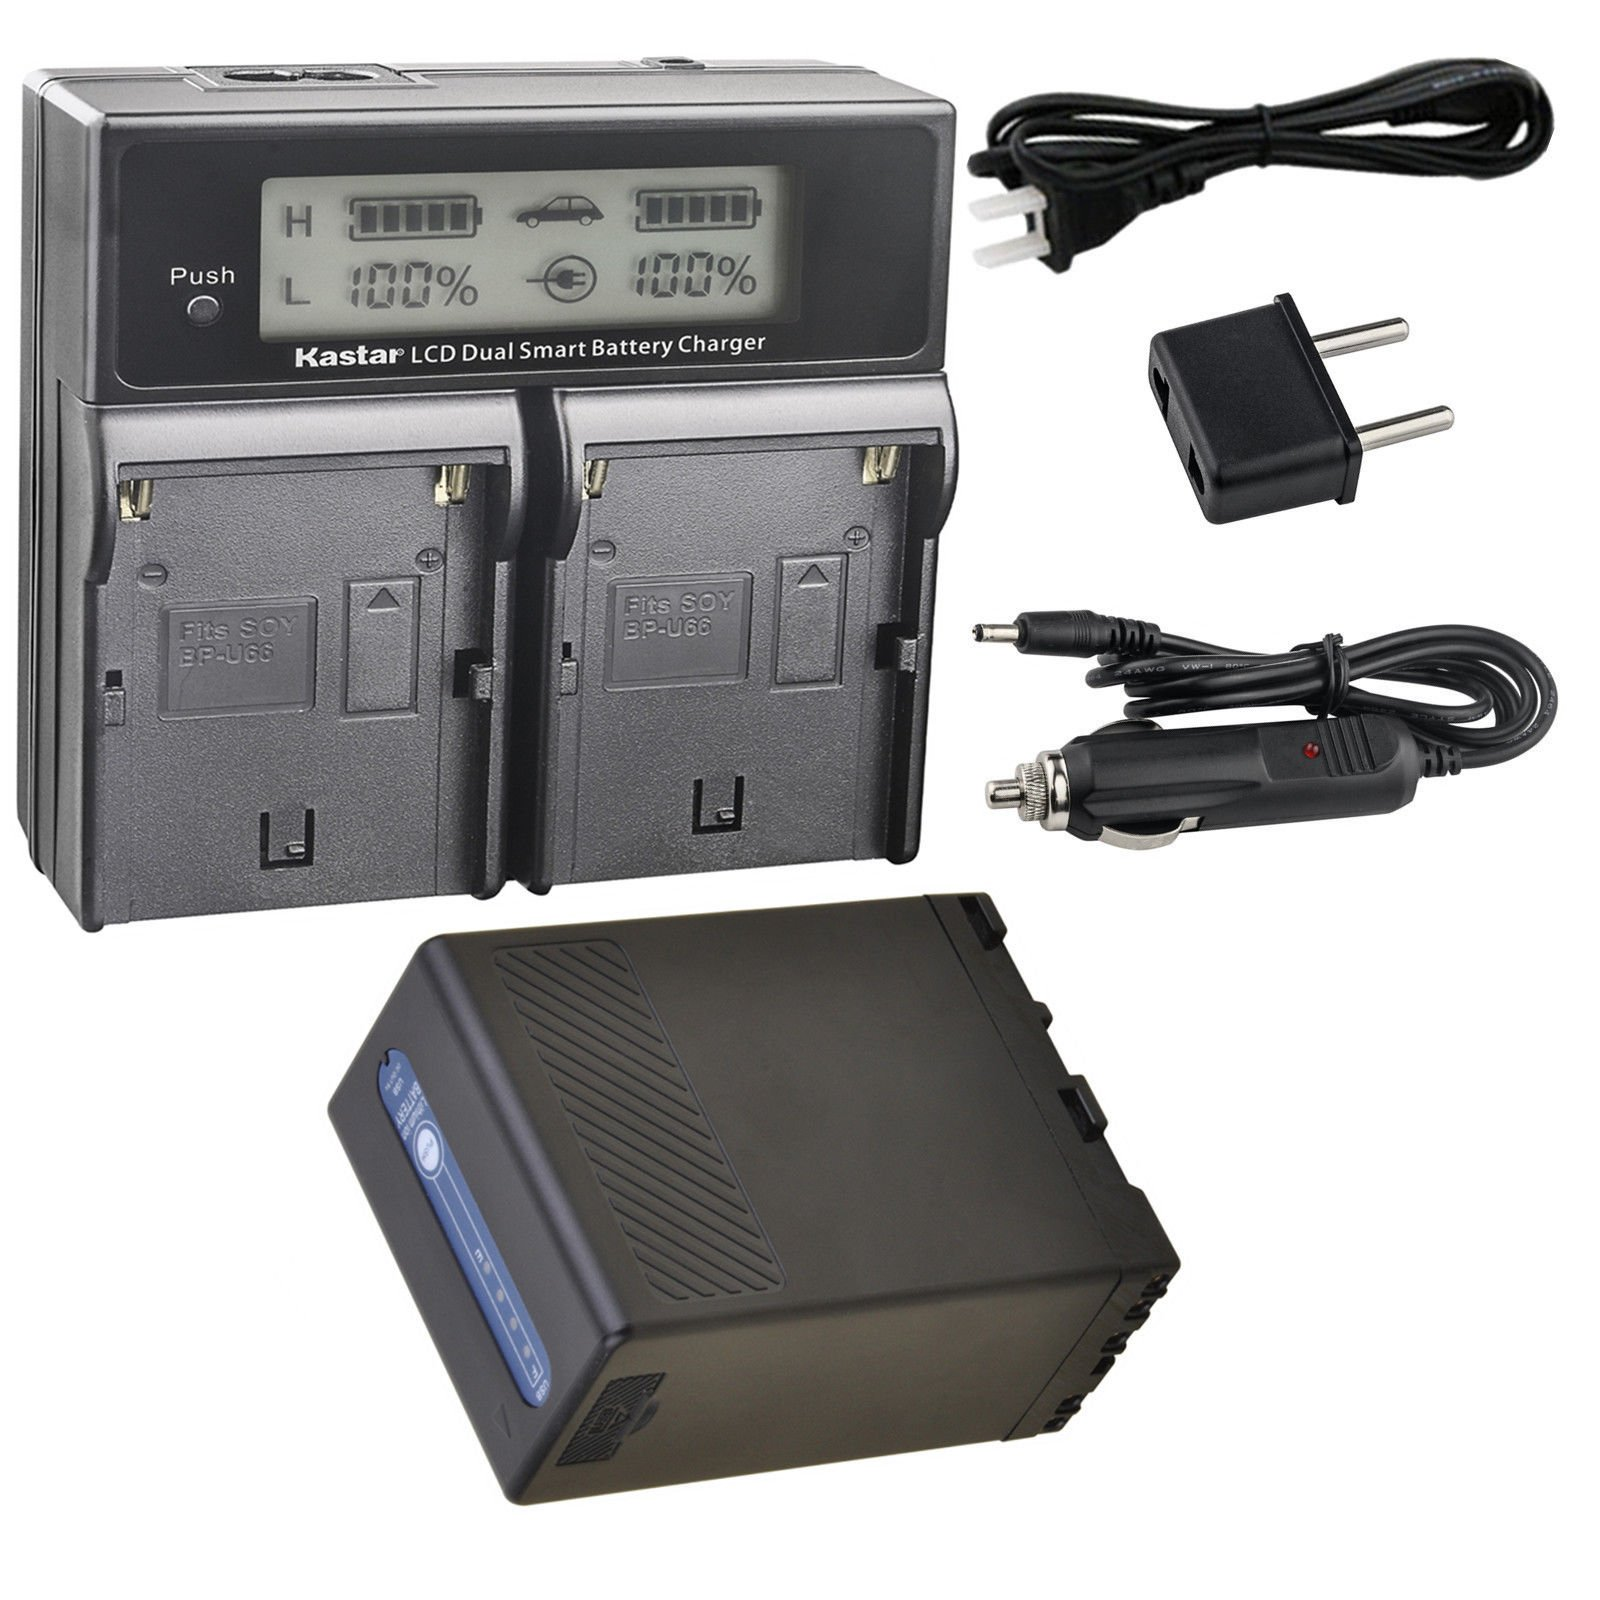 Kastar Battery 1 Pcs and LCD Dual Fast Charger for Sony BP-U90 BP-U95 BP-U96 BP-U60 BP-U65 BP-U66 BP-U68 BP-U30 BC-U1 BC-U2 Sony PMW-150P XDCAM EX HD422 PHU-60K PXW-Z450 PXW-Z190 PXW-Z280 Camcorder by Kastar